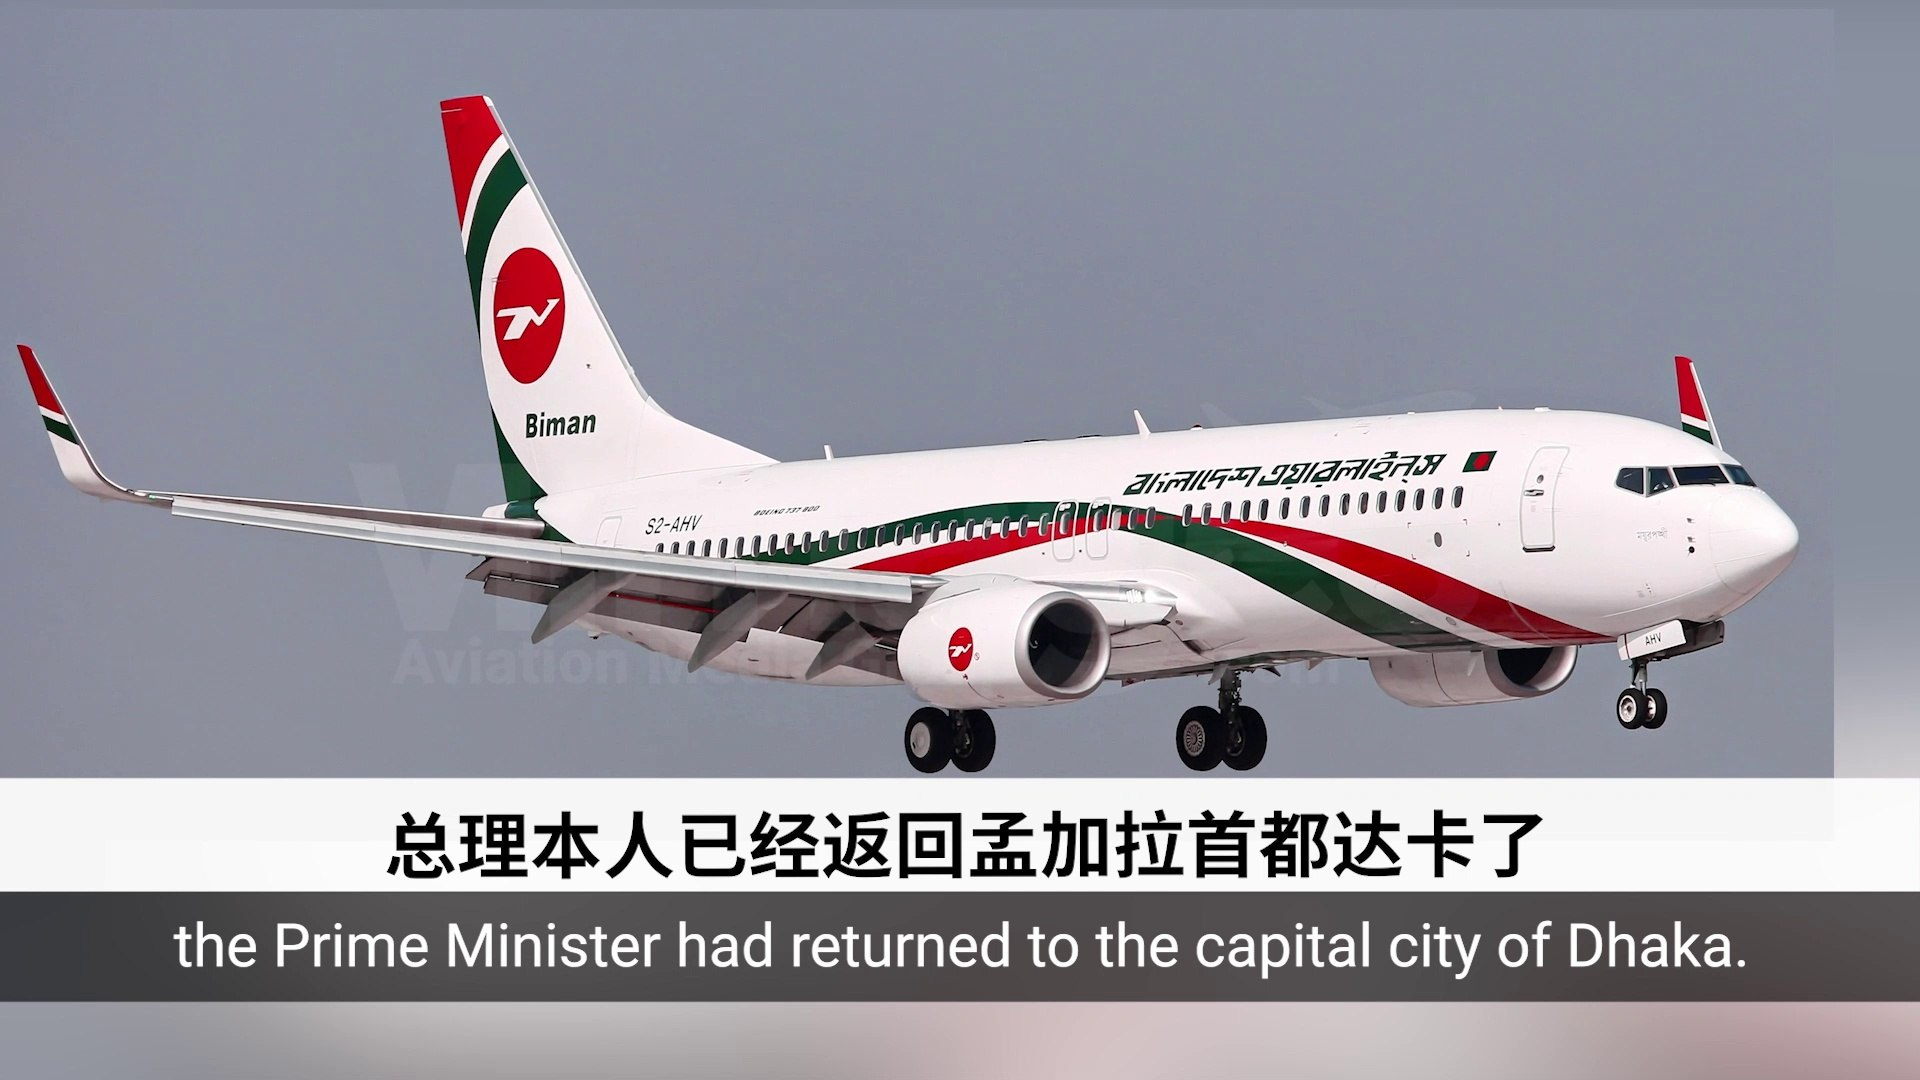 ChinesePod Today: Bangladesh plane hijacker shot dead by special forces (simp. characters)